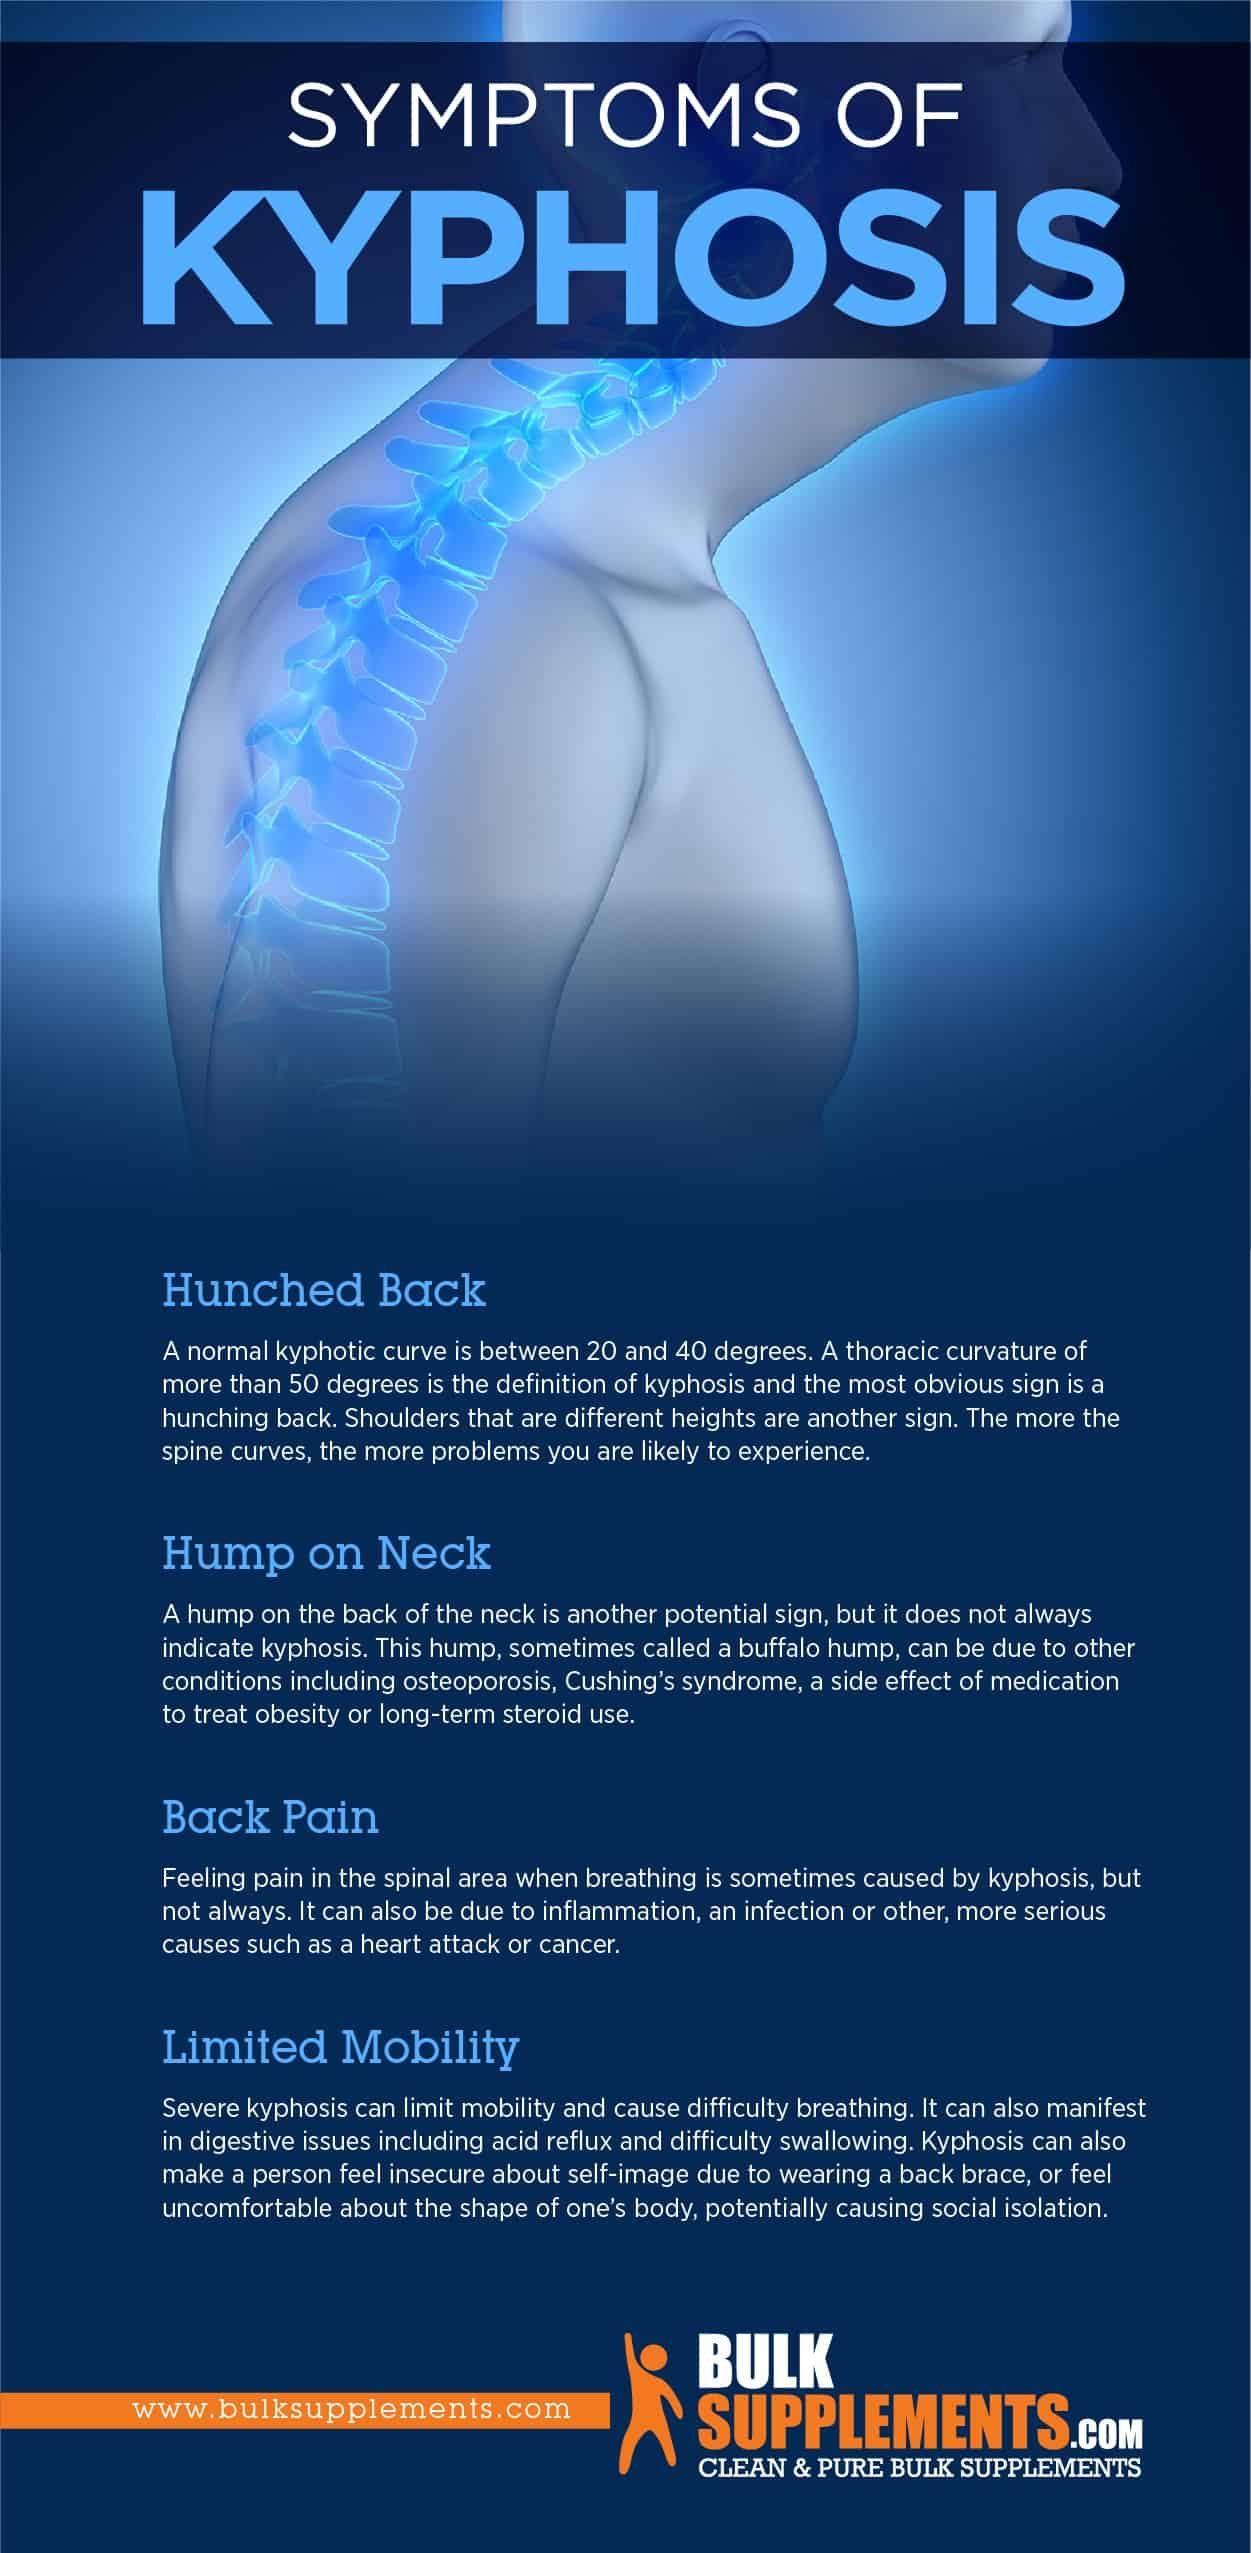 Symptoms of Kyphosis